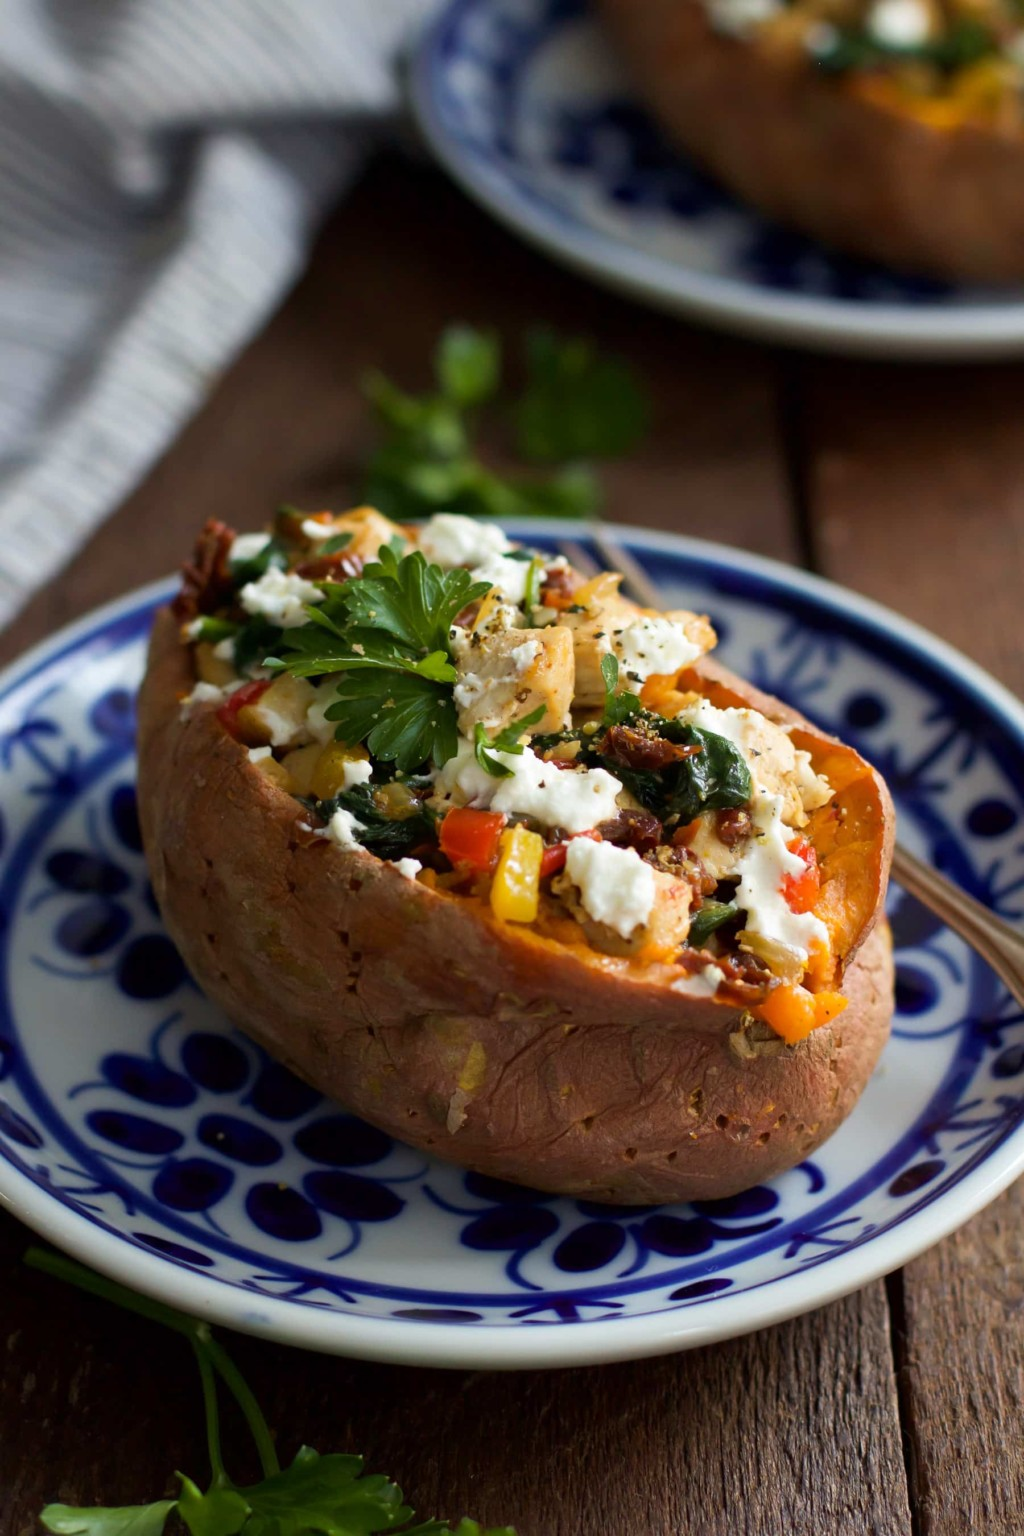 Goat Cheese Chicken Stuffed Sweet Potato_- This ultra-easy to make Goat Cheese Chicken Stuffed Sweet Potato recipe is healthy, filling and delicious. It is made with spinach, chicken, garlic, onions, bell peppers and goat cheese. This is definitely a perfect meal for chilly winter nights that requires simple ingredients.